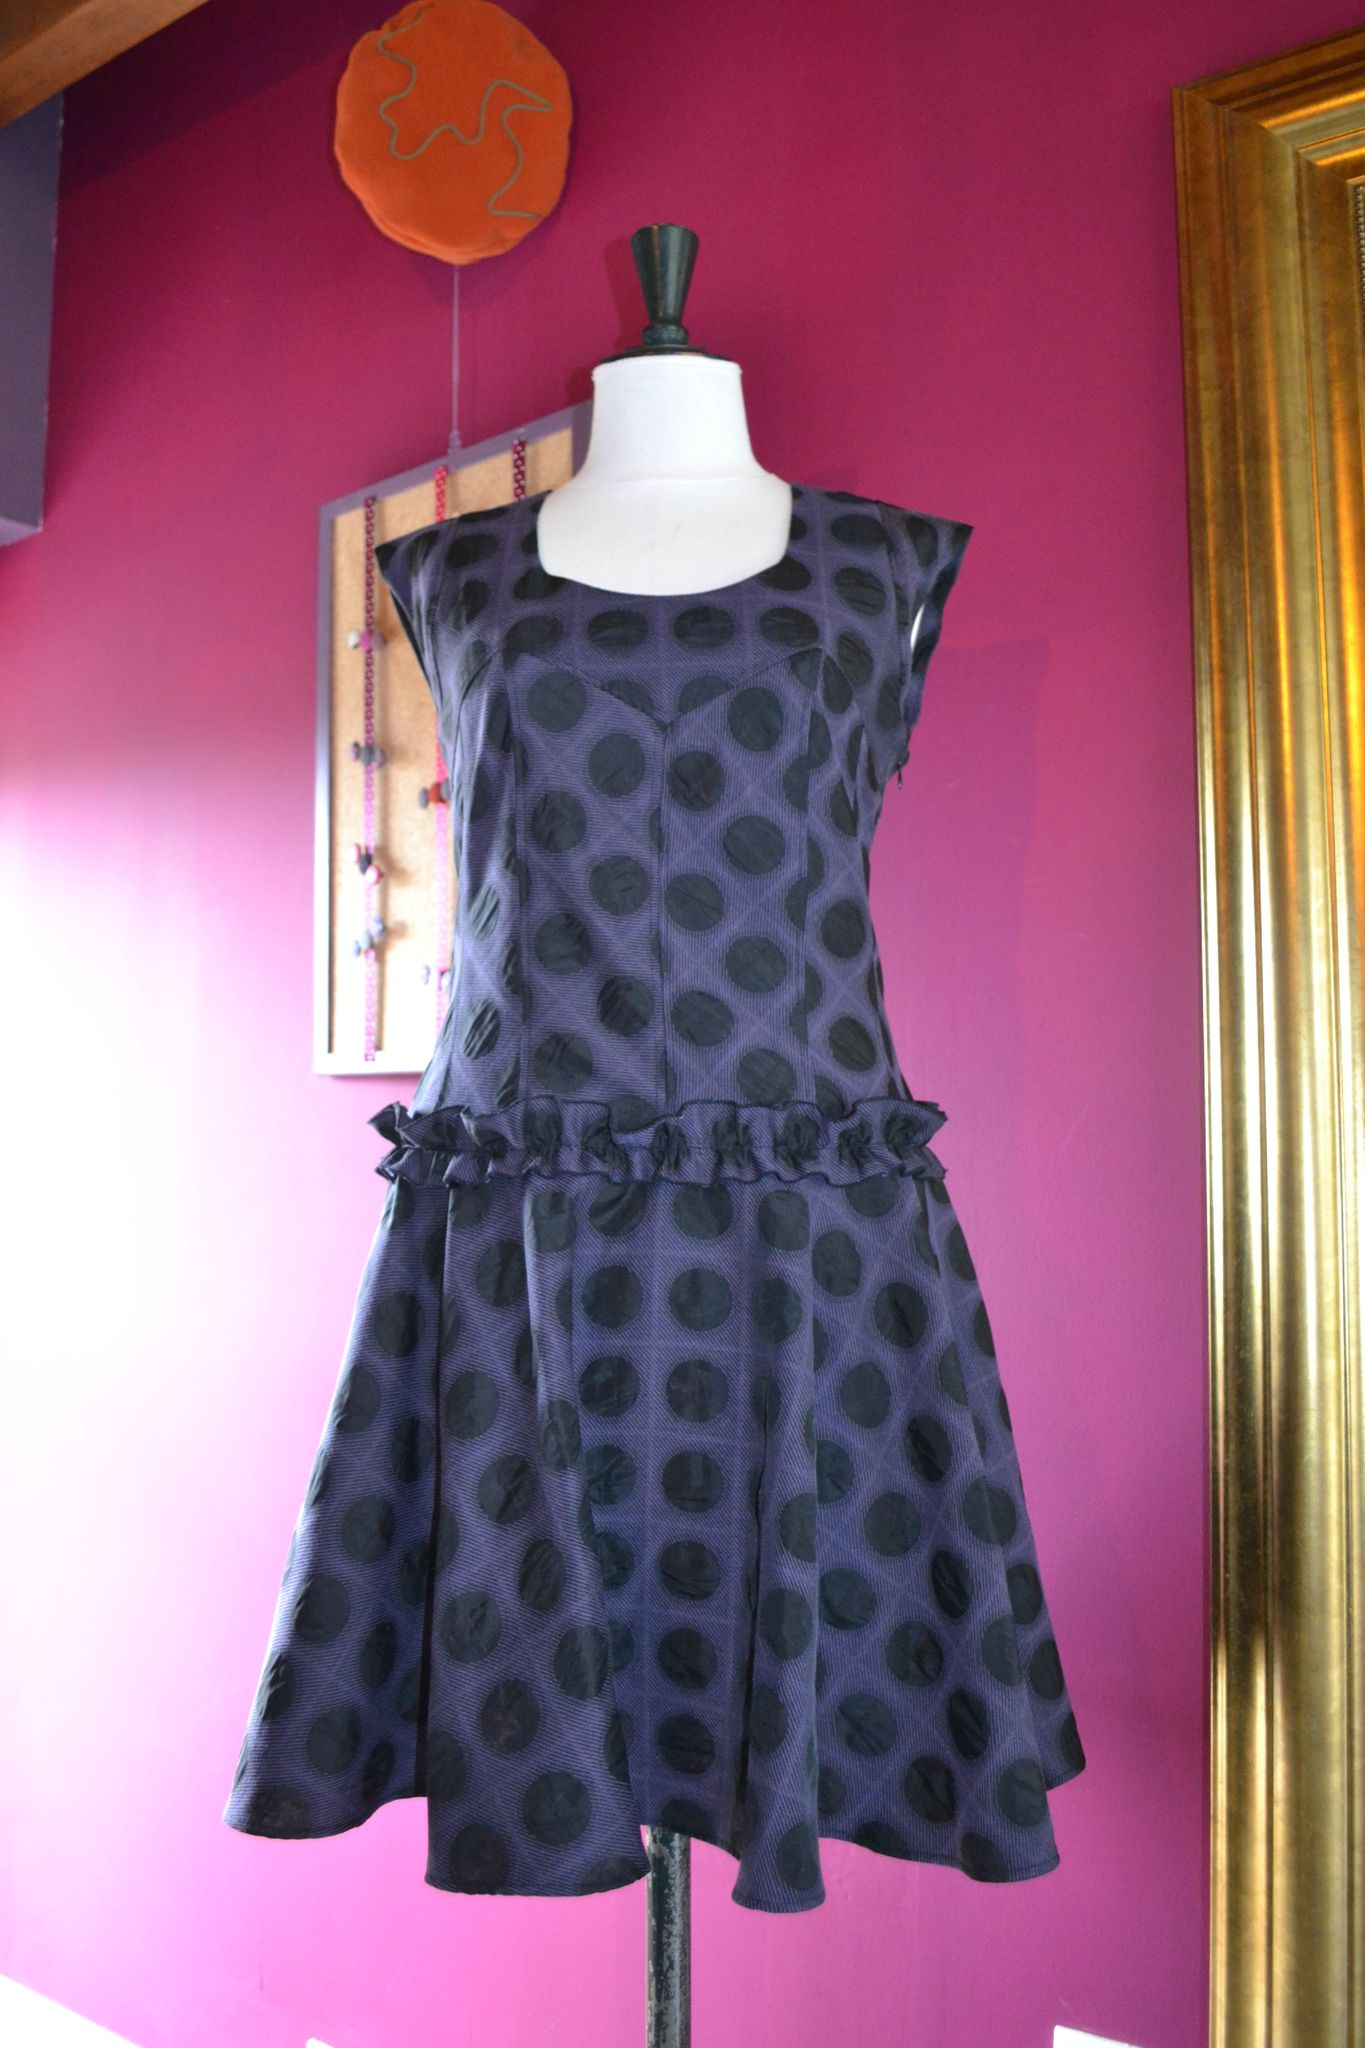 robe en jacquard d'inspiration 60's/purplely